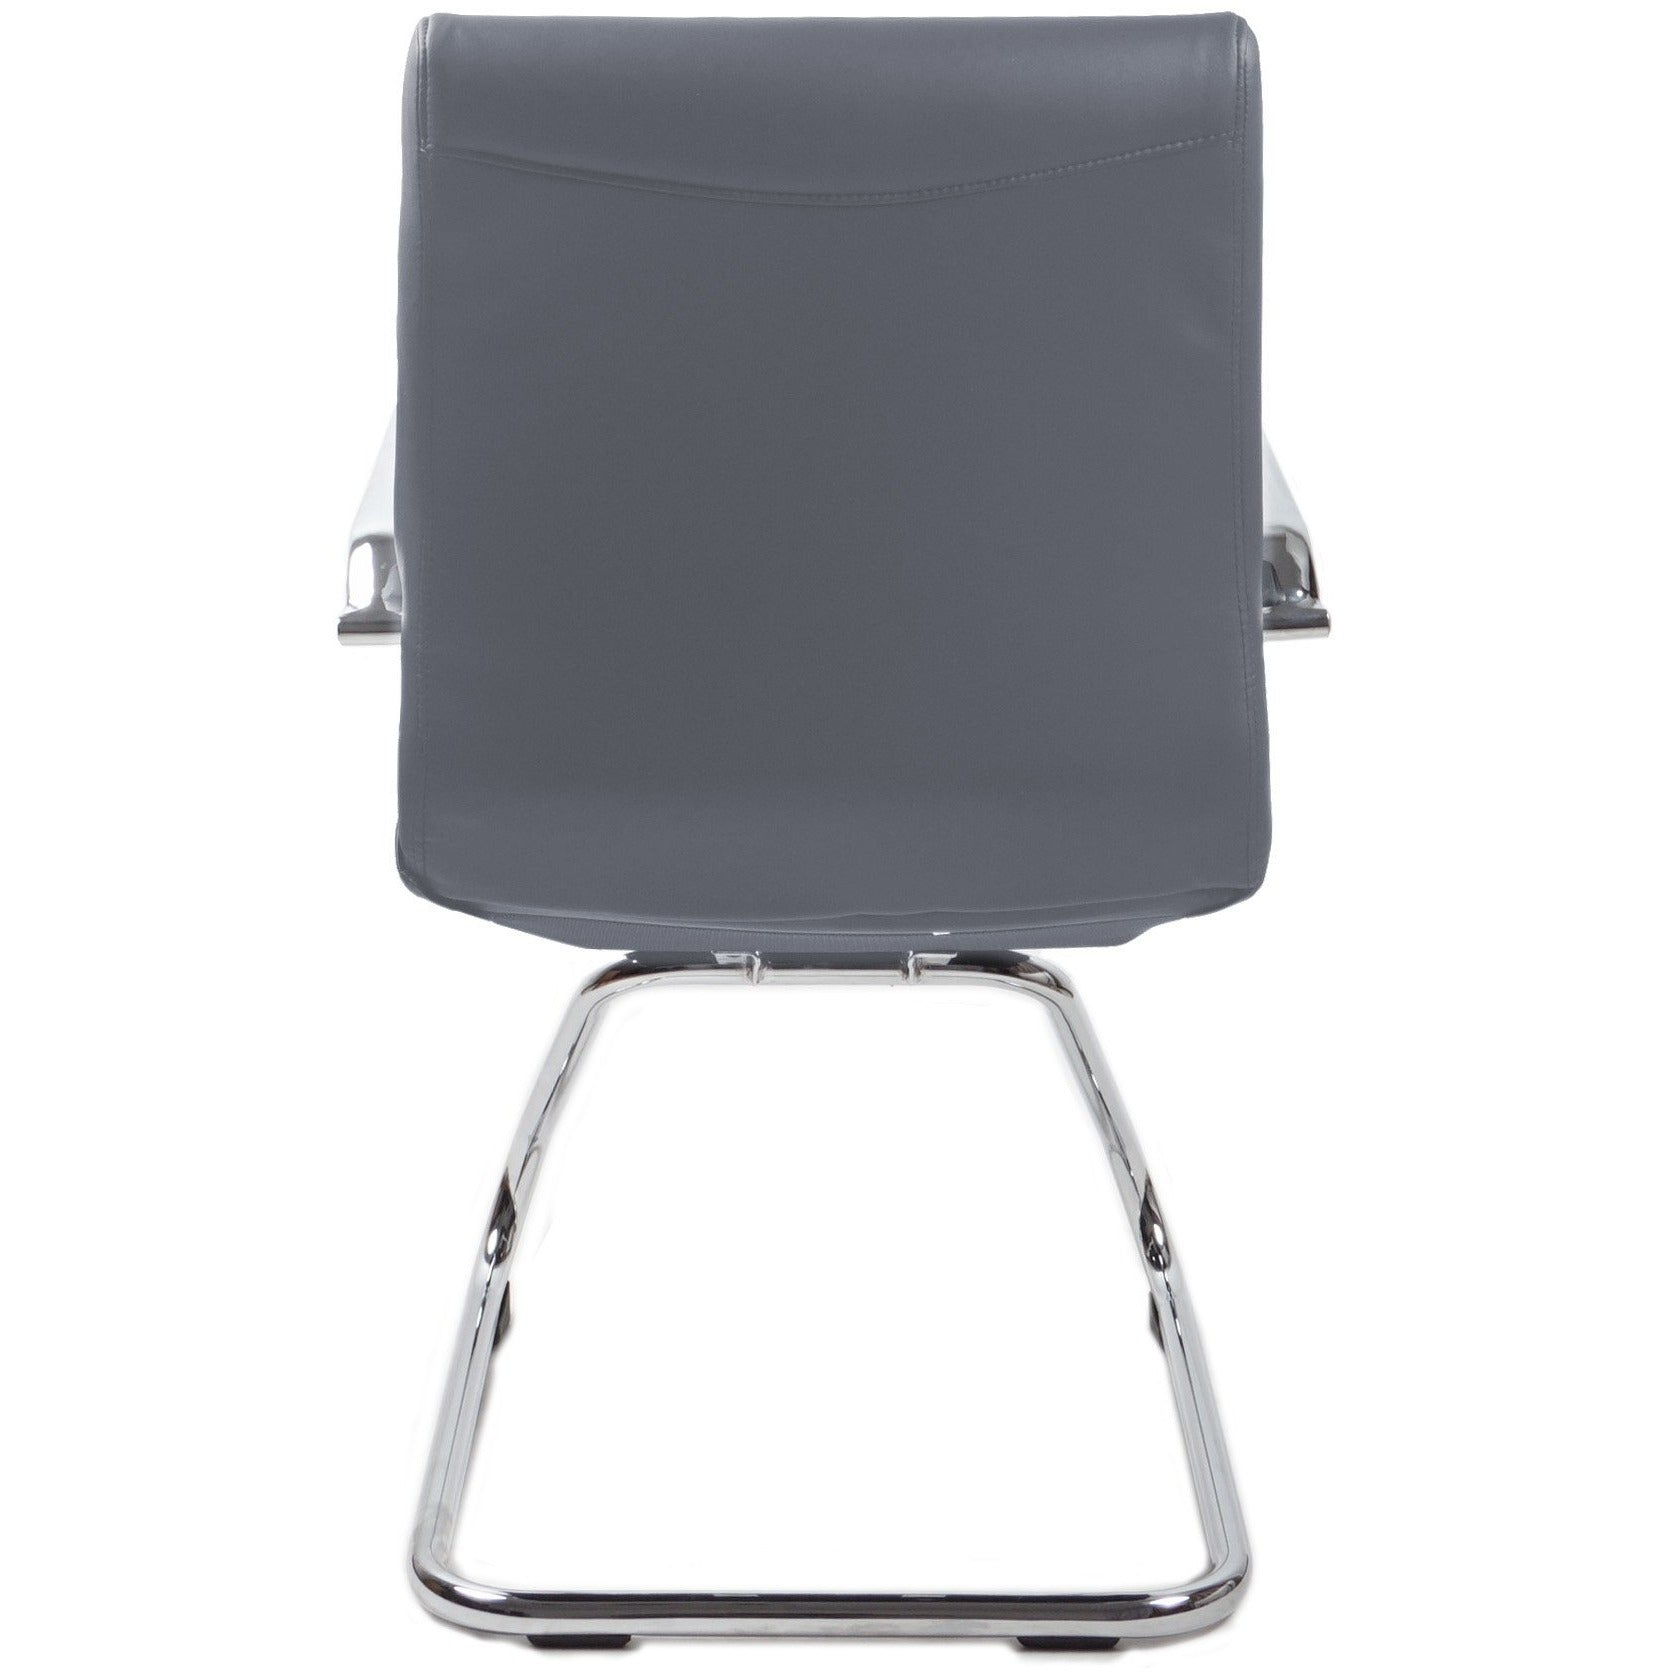 RealBiz II Modern Comfort Series Visitor LeatherPro Chair, Slate Gray